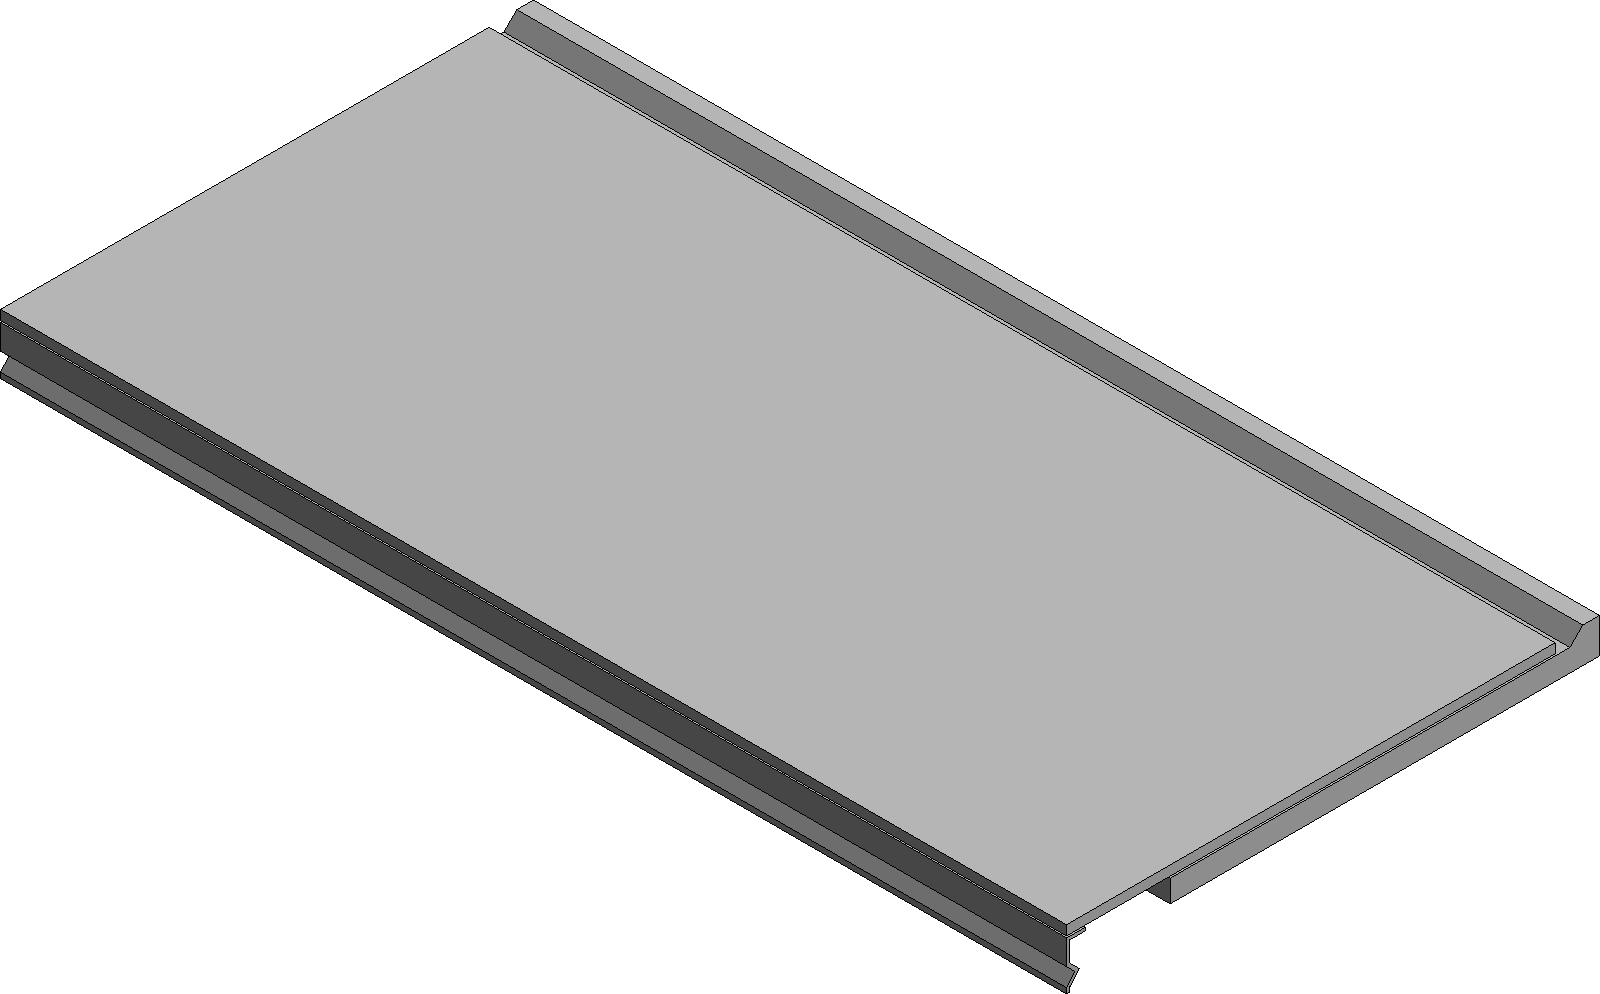 Balco Expansion Covers : Bim objects families